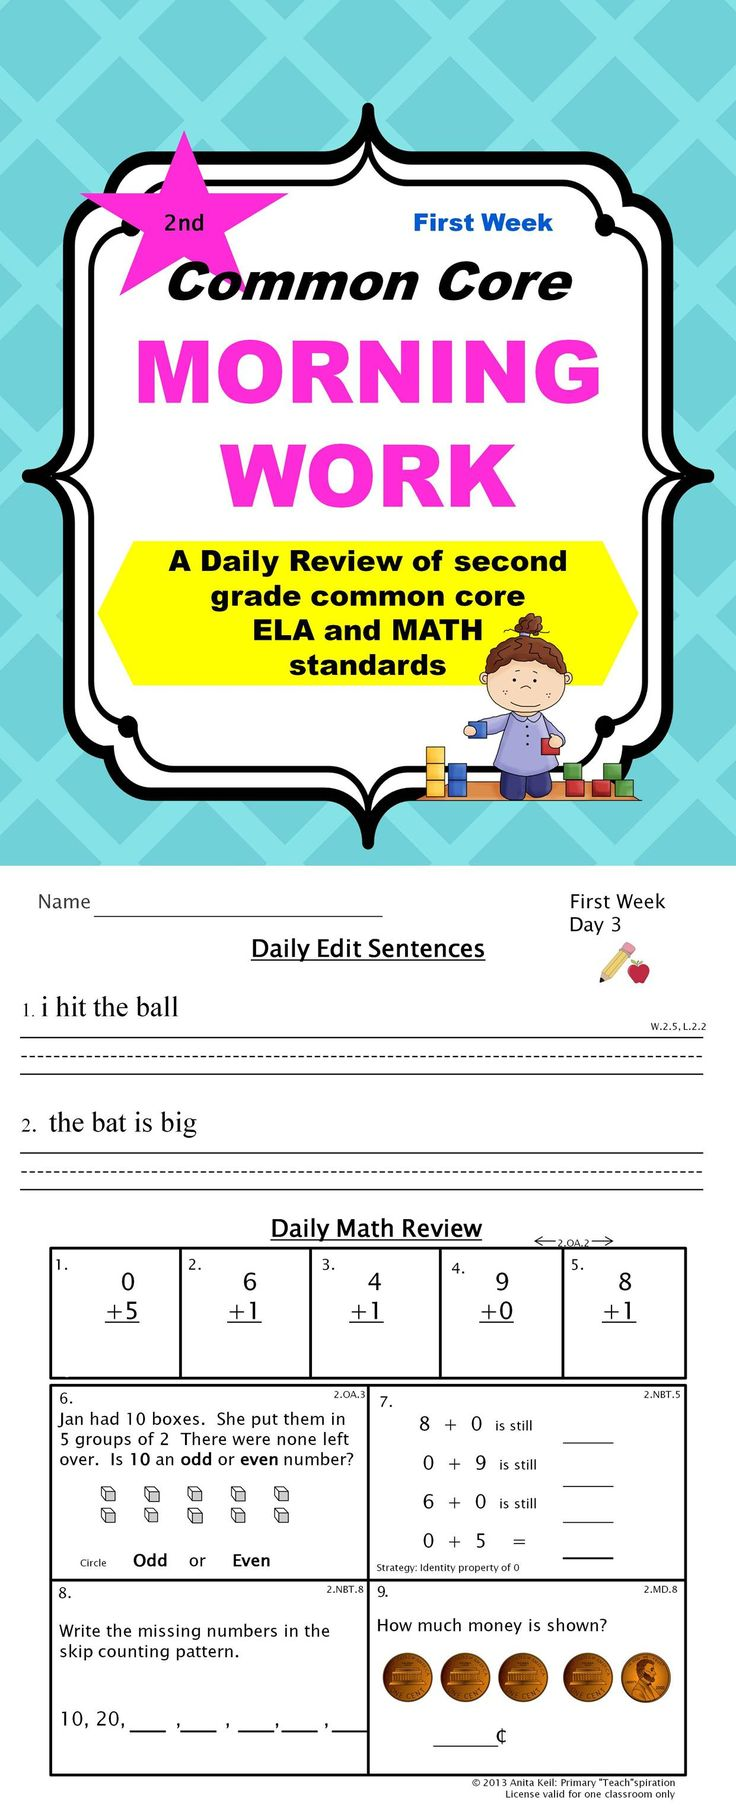 TAKE A PEEK AT A COMMON CORE WEEK! Then grab a FREE copy of this 2nd grade sample packet for the first week of Common Core Morning Work.